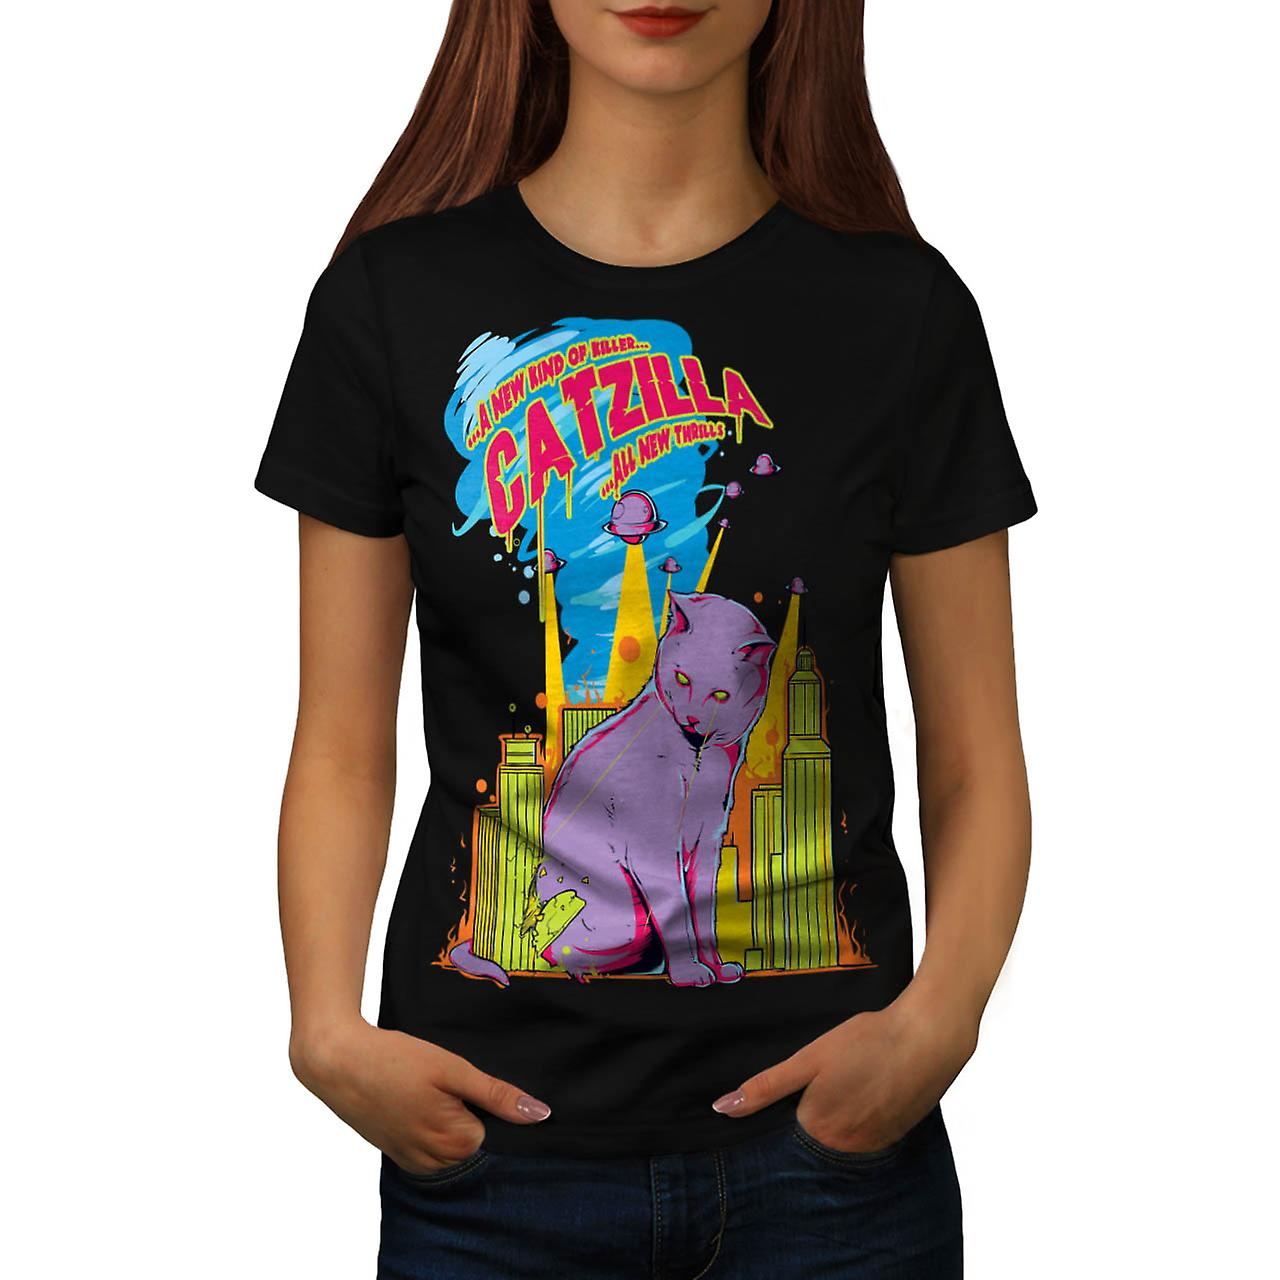 Katt Godzilla parodi Attack Kitty kvinnor svart T-shirt | Wellcoda